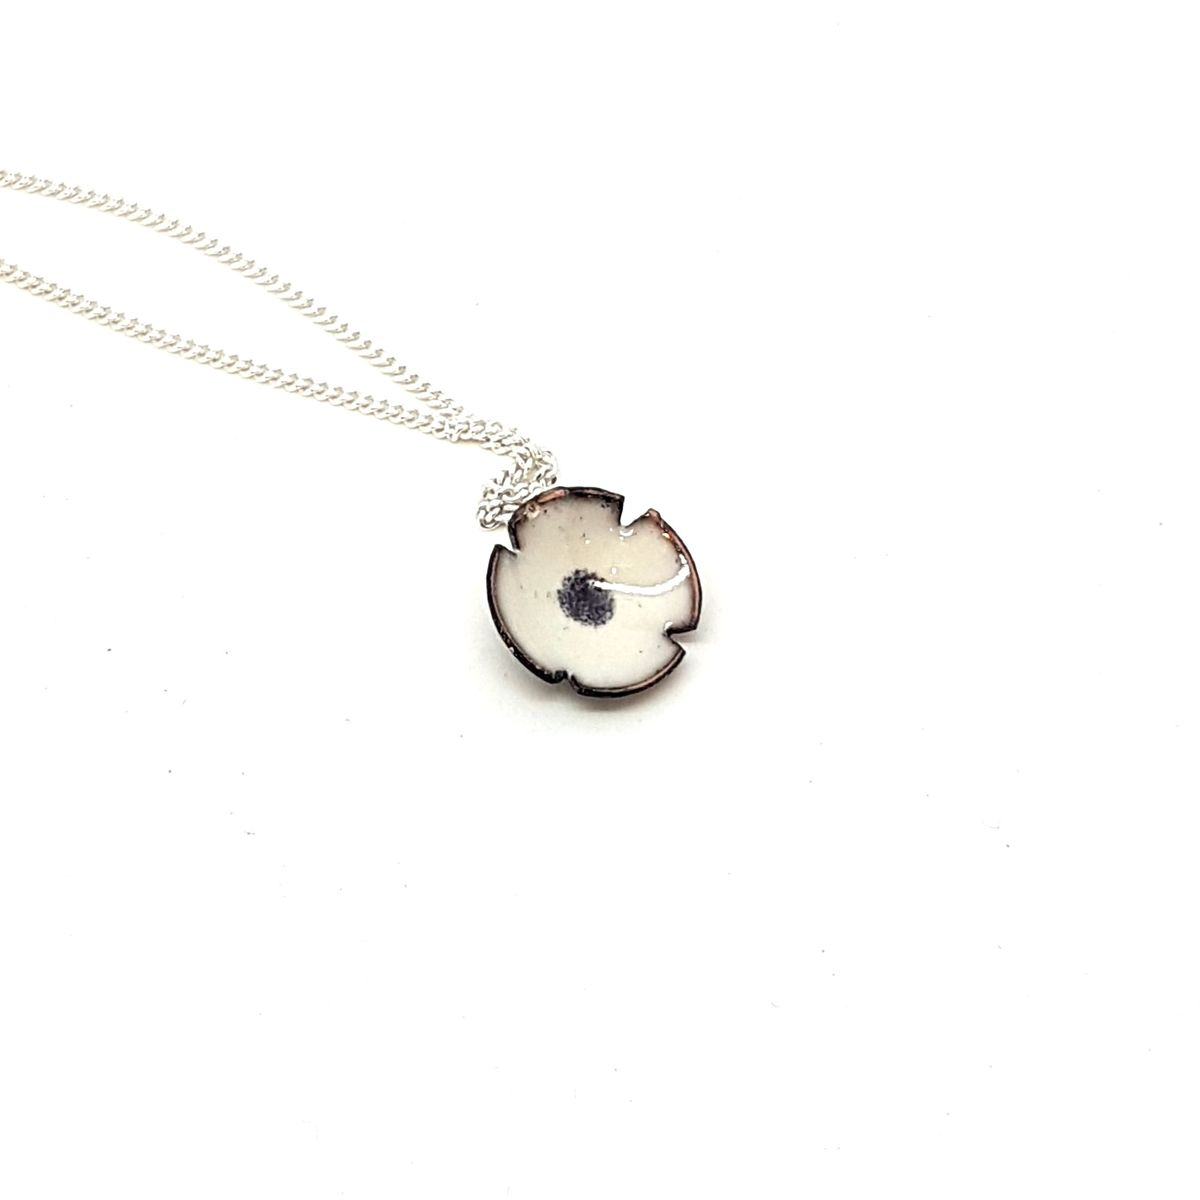 White Poppy Flower Pendant - product images  of